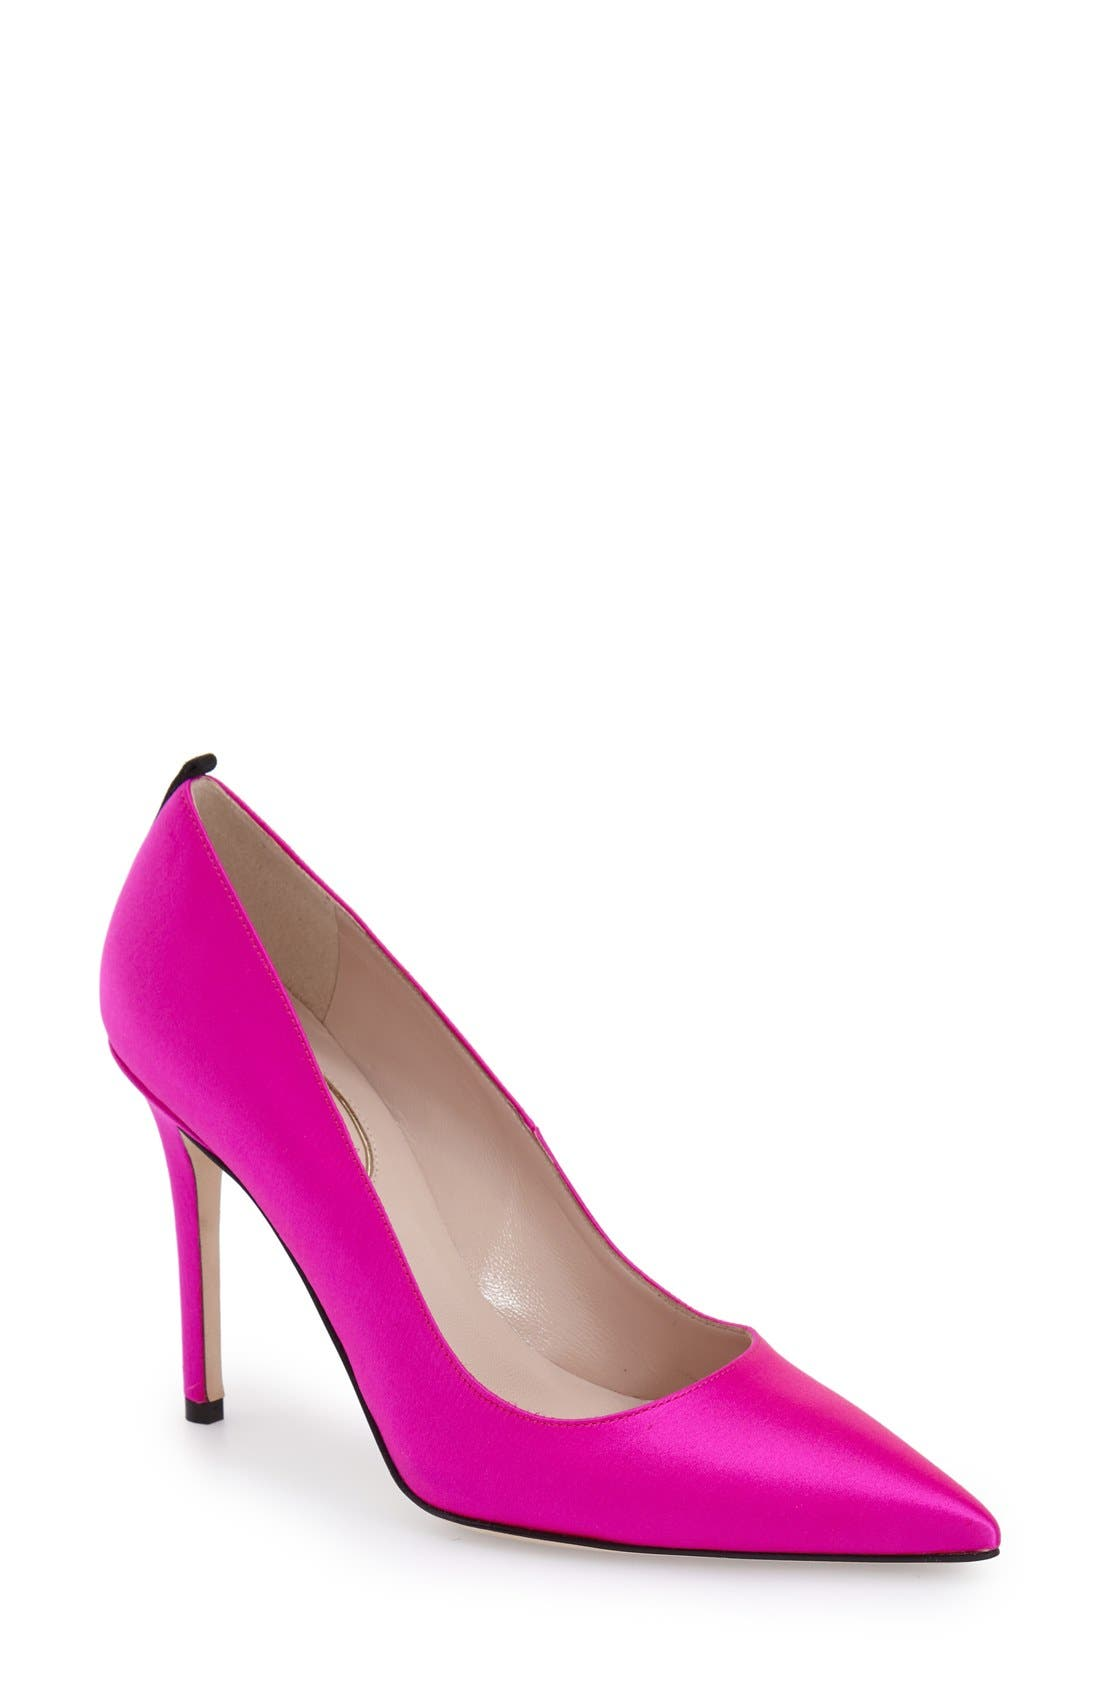 Alternate Image 1 Selected - SJP by Sarah Jessica Parker 'Fawn' Pointy Toe Pump (Women)